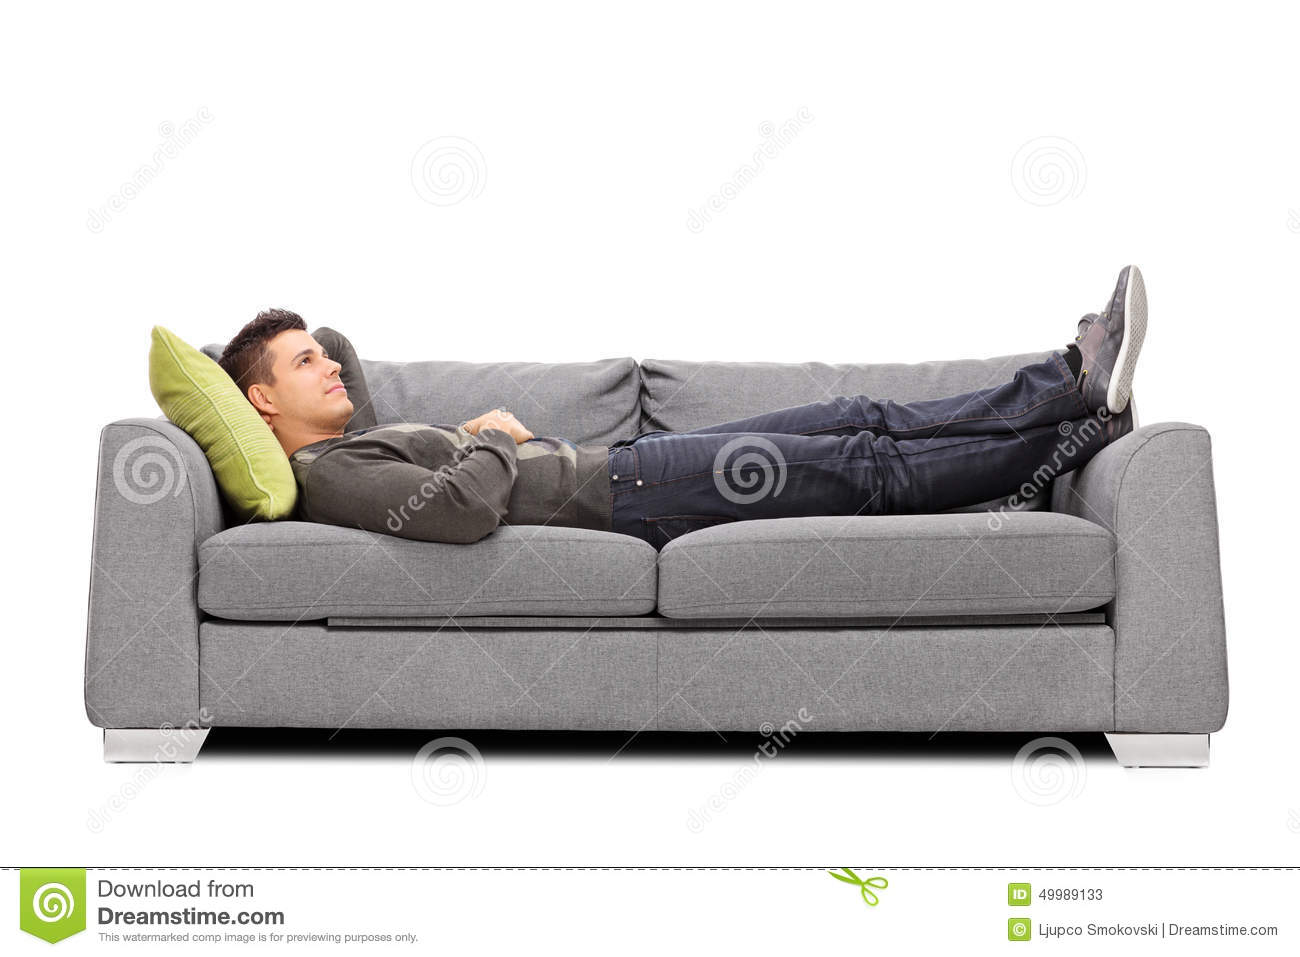 Pensive Young Guy Laying On A Sofa Stock Photo - Image: 49989133